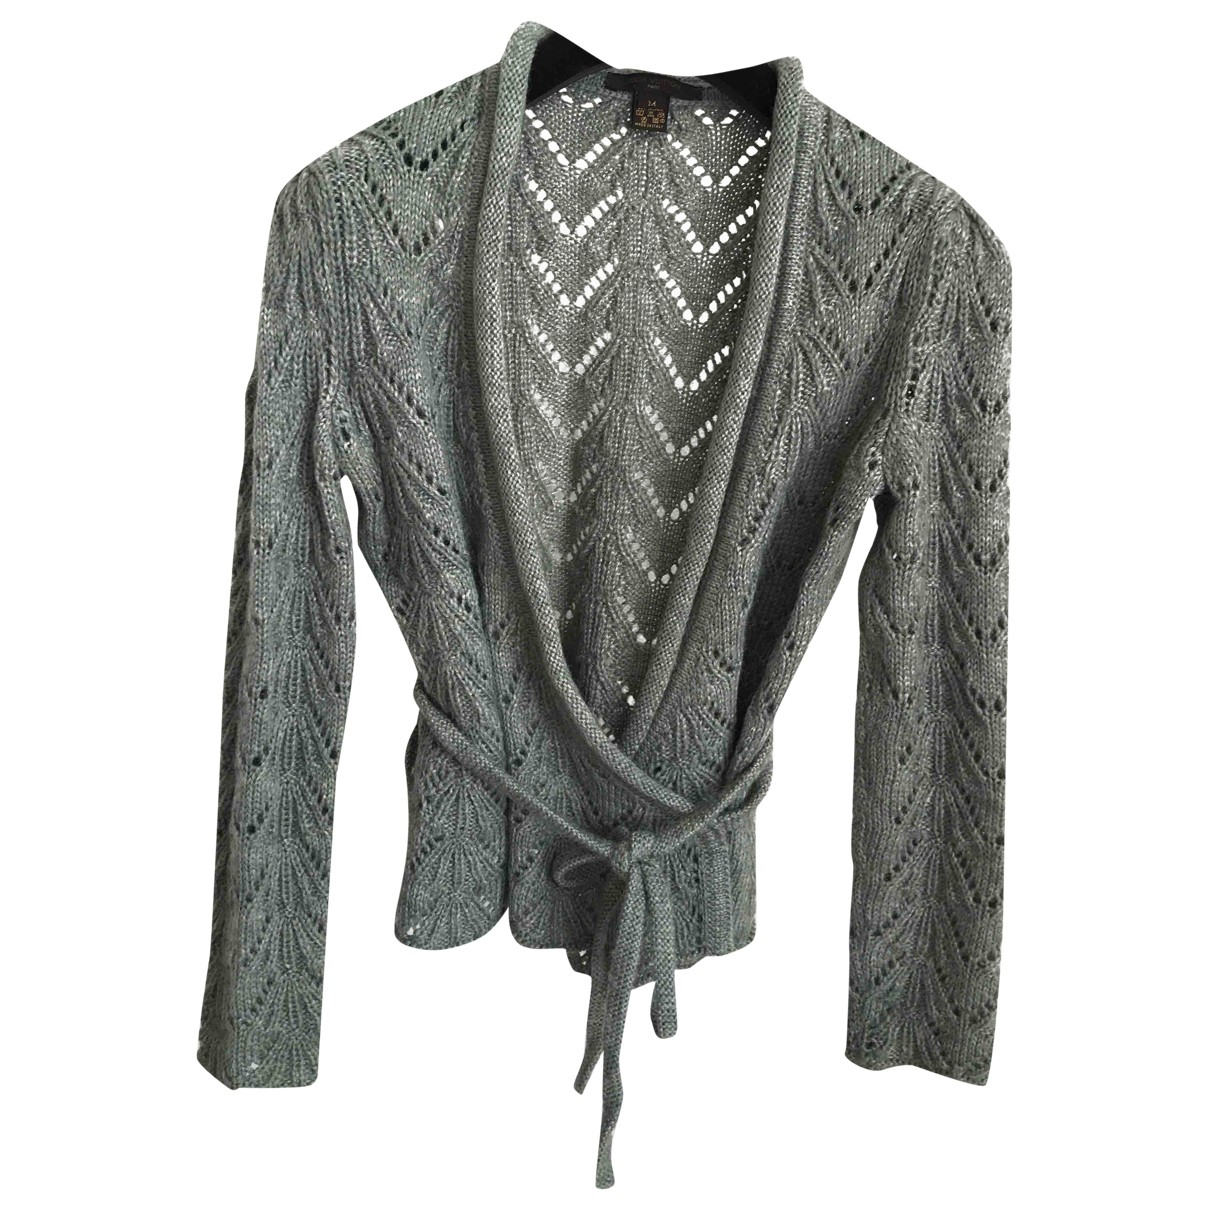 Louis Vuitton N Green Wool Knitwear for Women M International